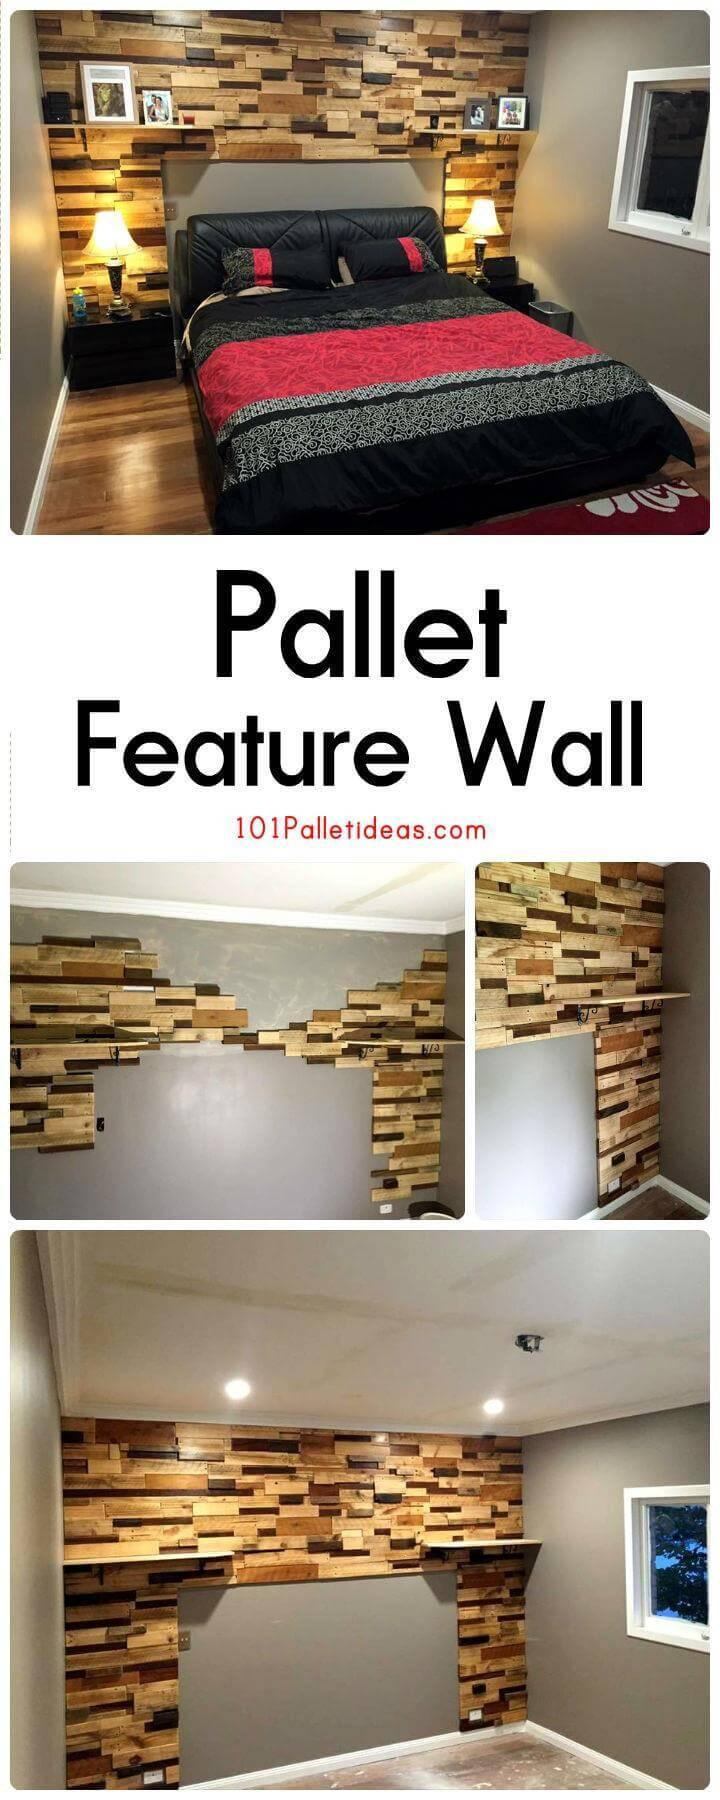 Pallet Feature Wall Easy Pallet Ideas